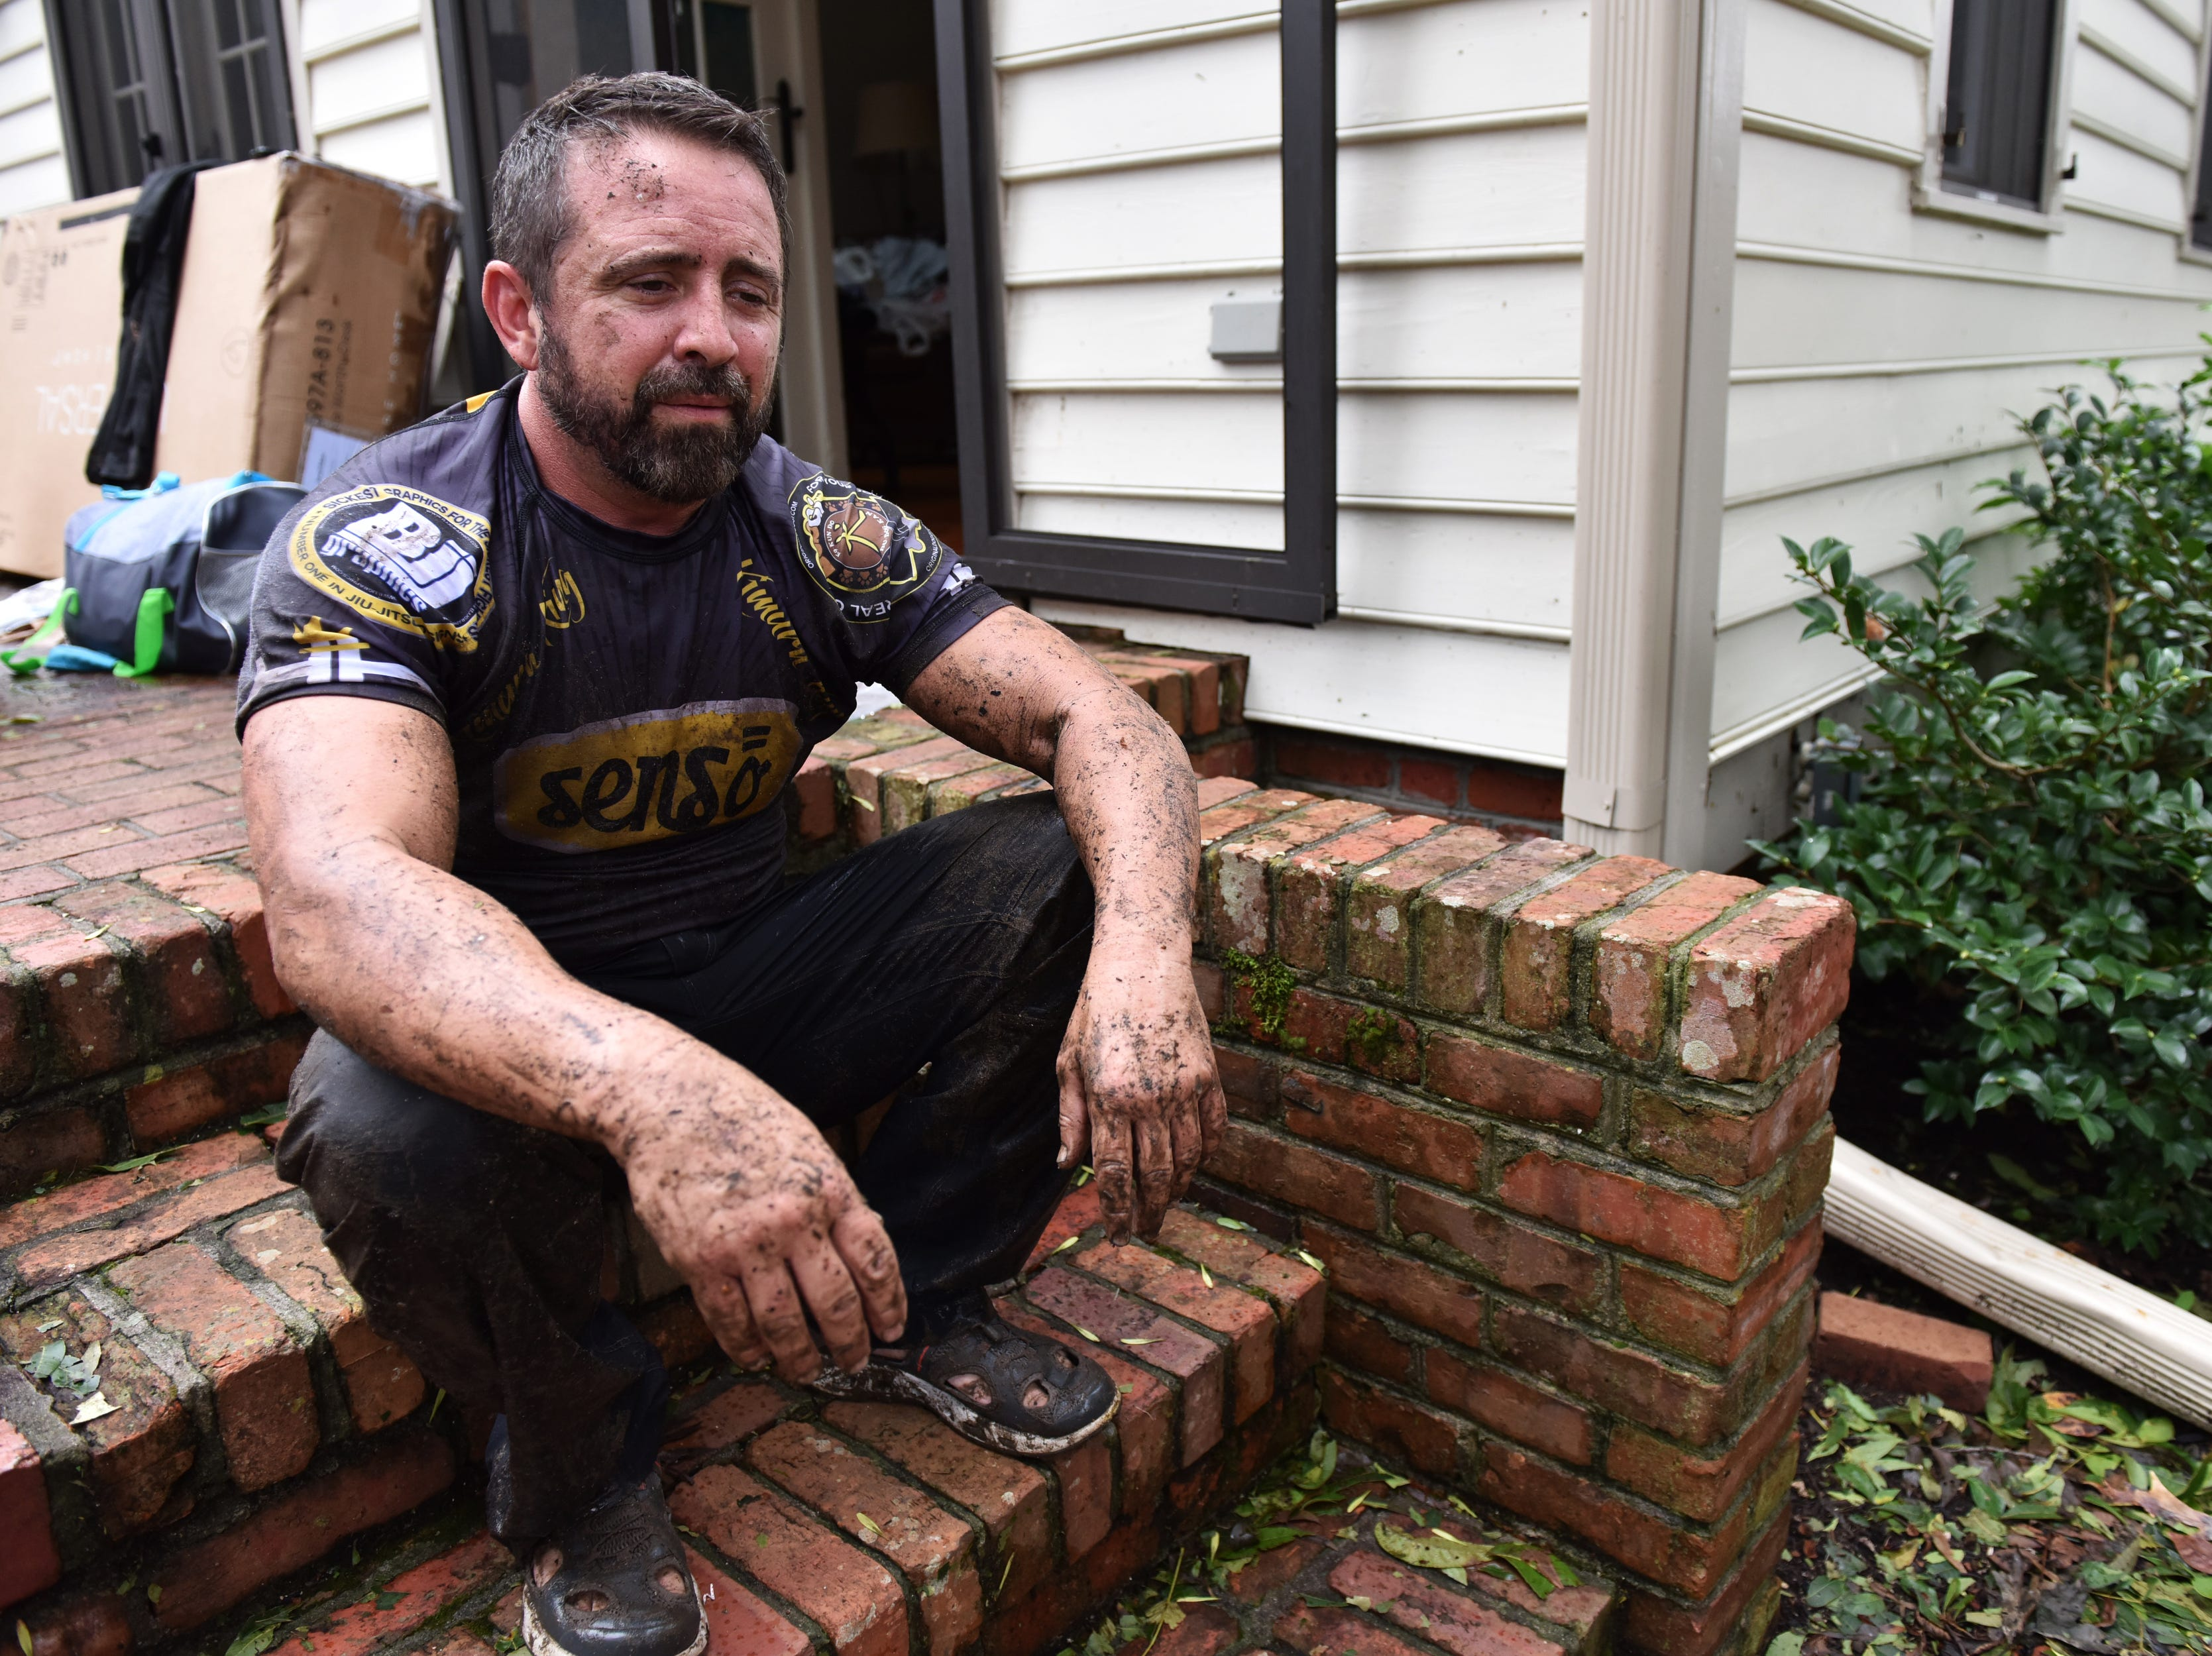 Sept. 16, 2018: Jay Singleton, 46, of New Bern N.C. takes a break after removing all the insulation from the basement in his home that was built in 1810 in the historic neighborhood of New Bern, N.C. Flood waters filled his basement and brought in one foot of water into the first floor. Hurricane Florence brought heavy rain and winds causing flooding in North and South Carolinas.